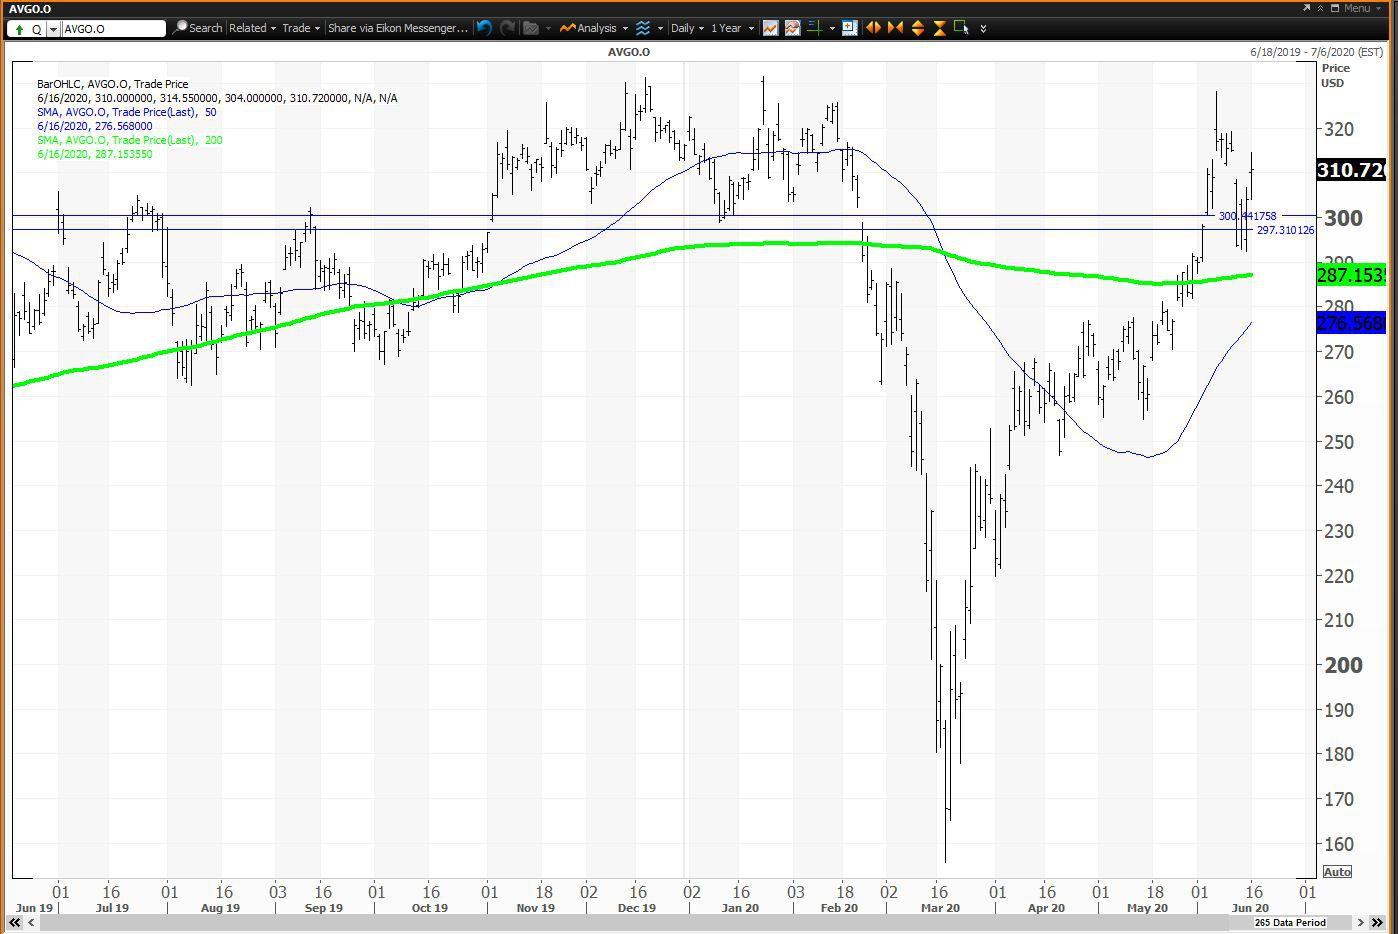 Daily chart showing the share price performance of Broadcom Inc. (AVGO)